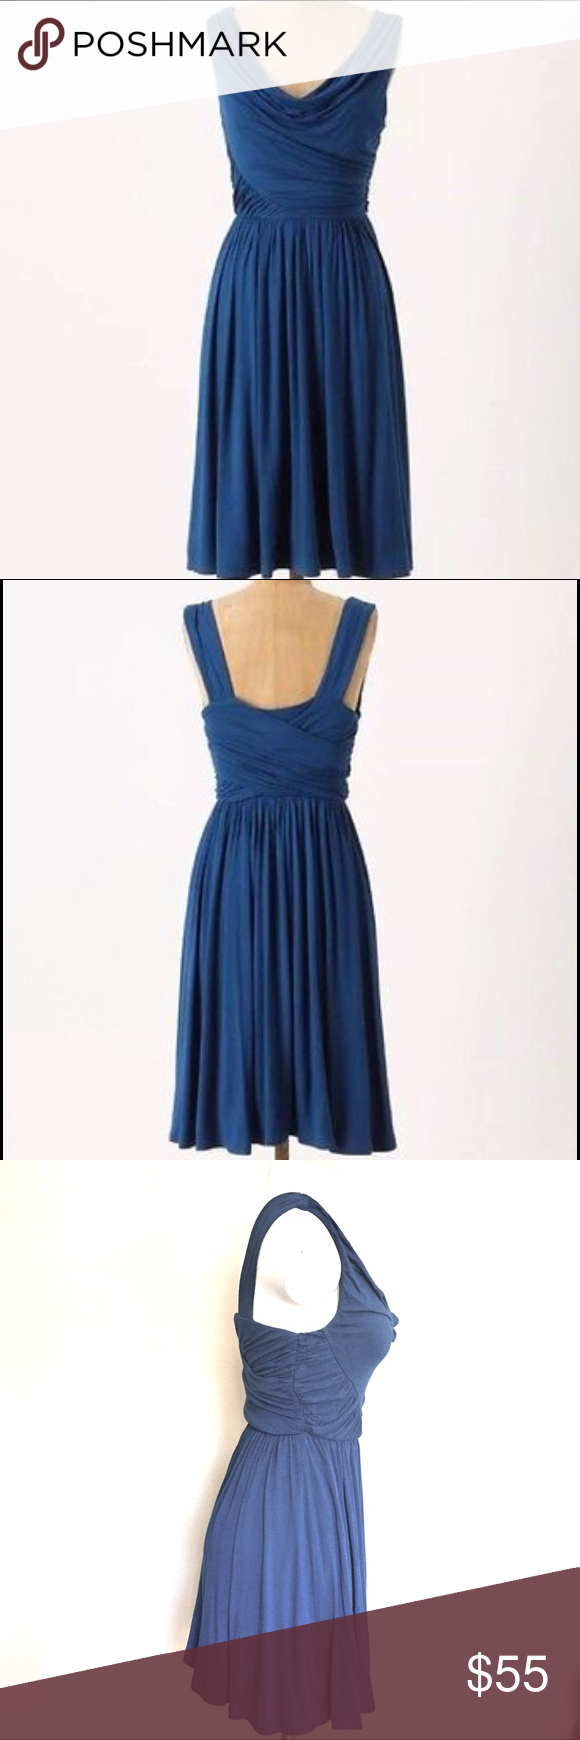 07edc3346fe3 Spotted while shopping on Poshmark: ❣️ANTHROPOLOGIE DELETTA RUCHED/DRAPED  JERSEY DRESS! #poshmark #fashion #shopping #style #Anthropologie #Dresses &  ...